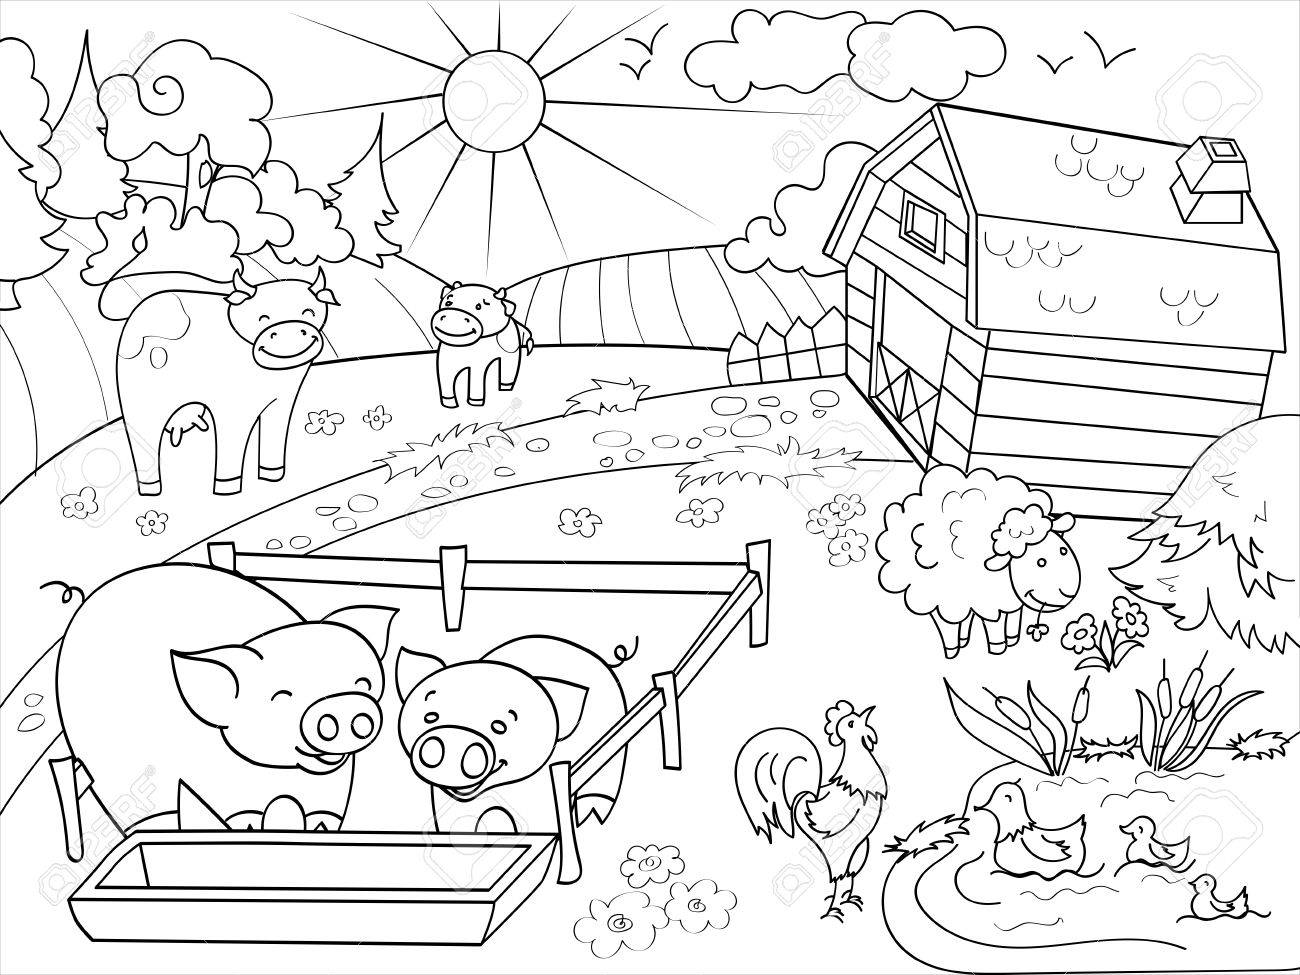 1300x975 Farm Animals And Rural Landscape Coloring Vector For Adults